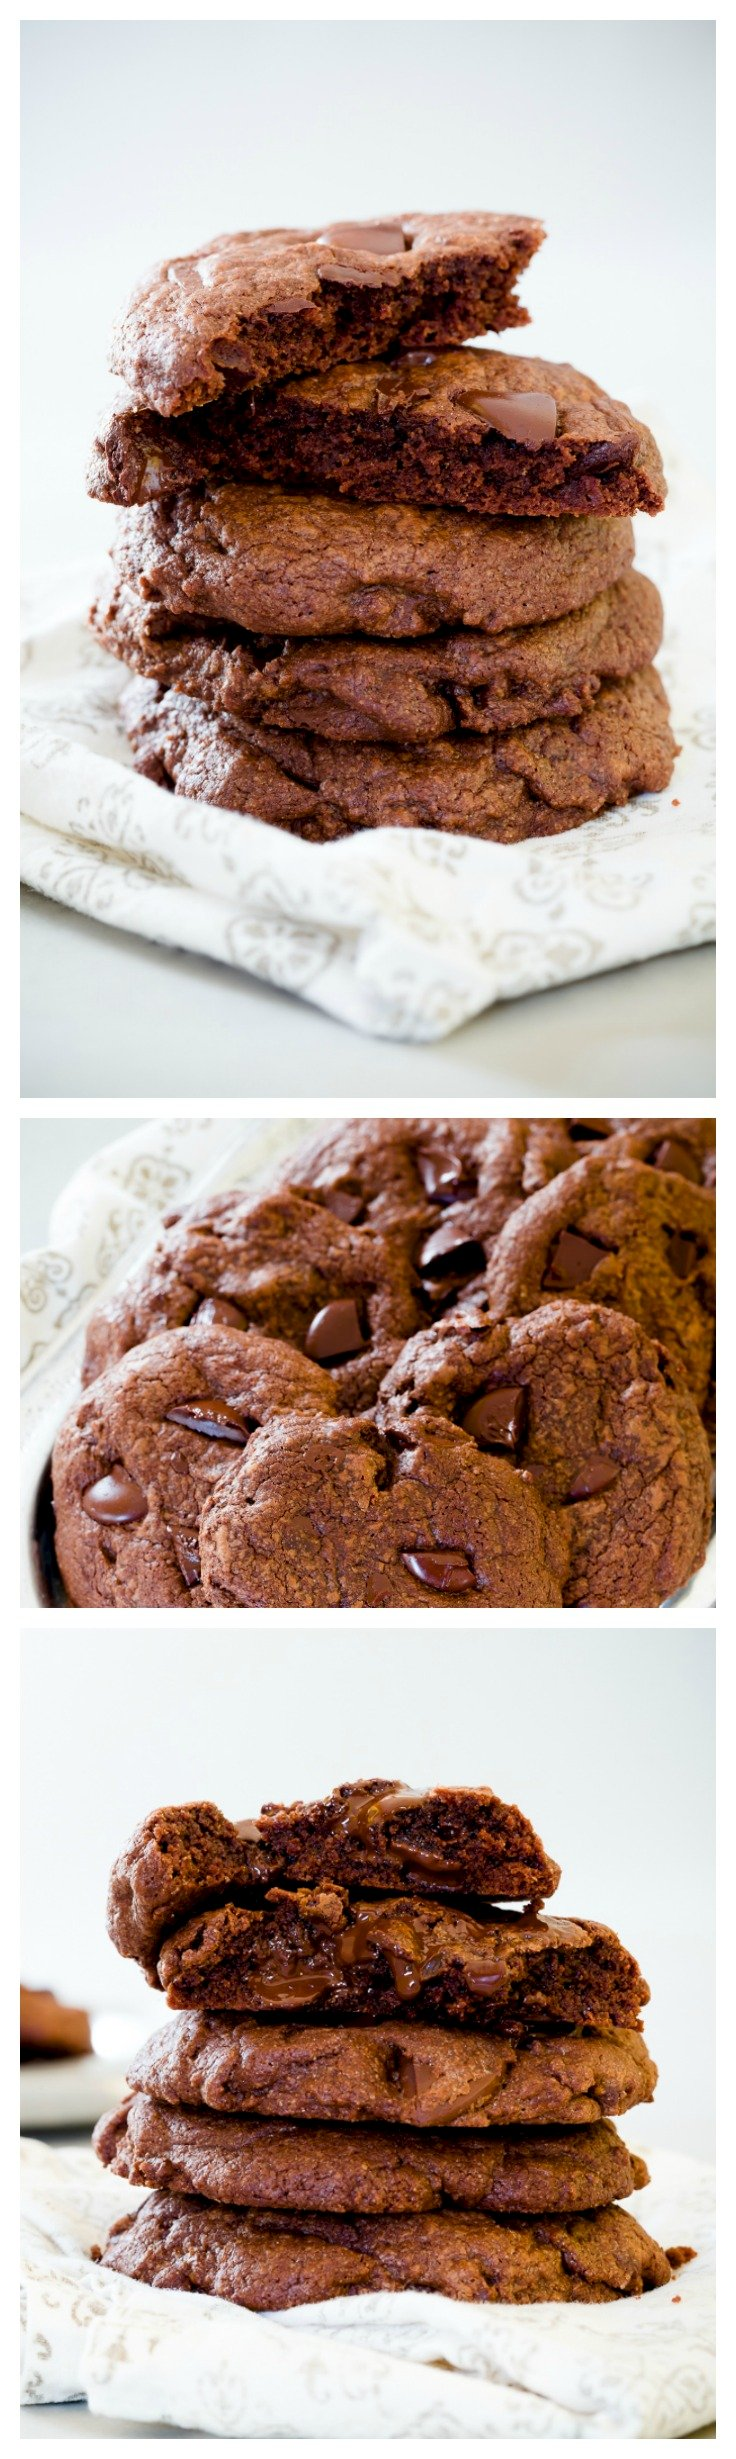 Amazing Double Chocolate Chip Cookies